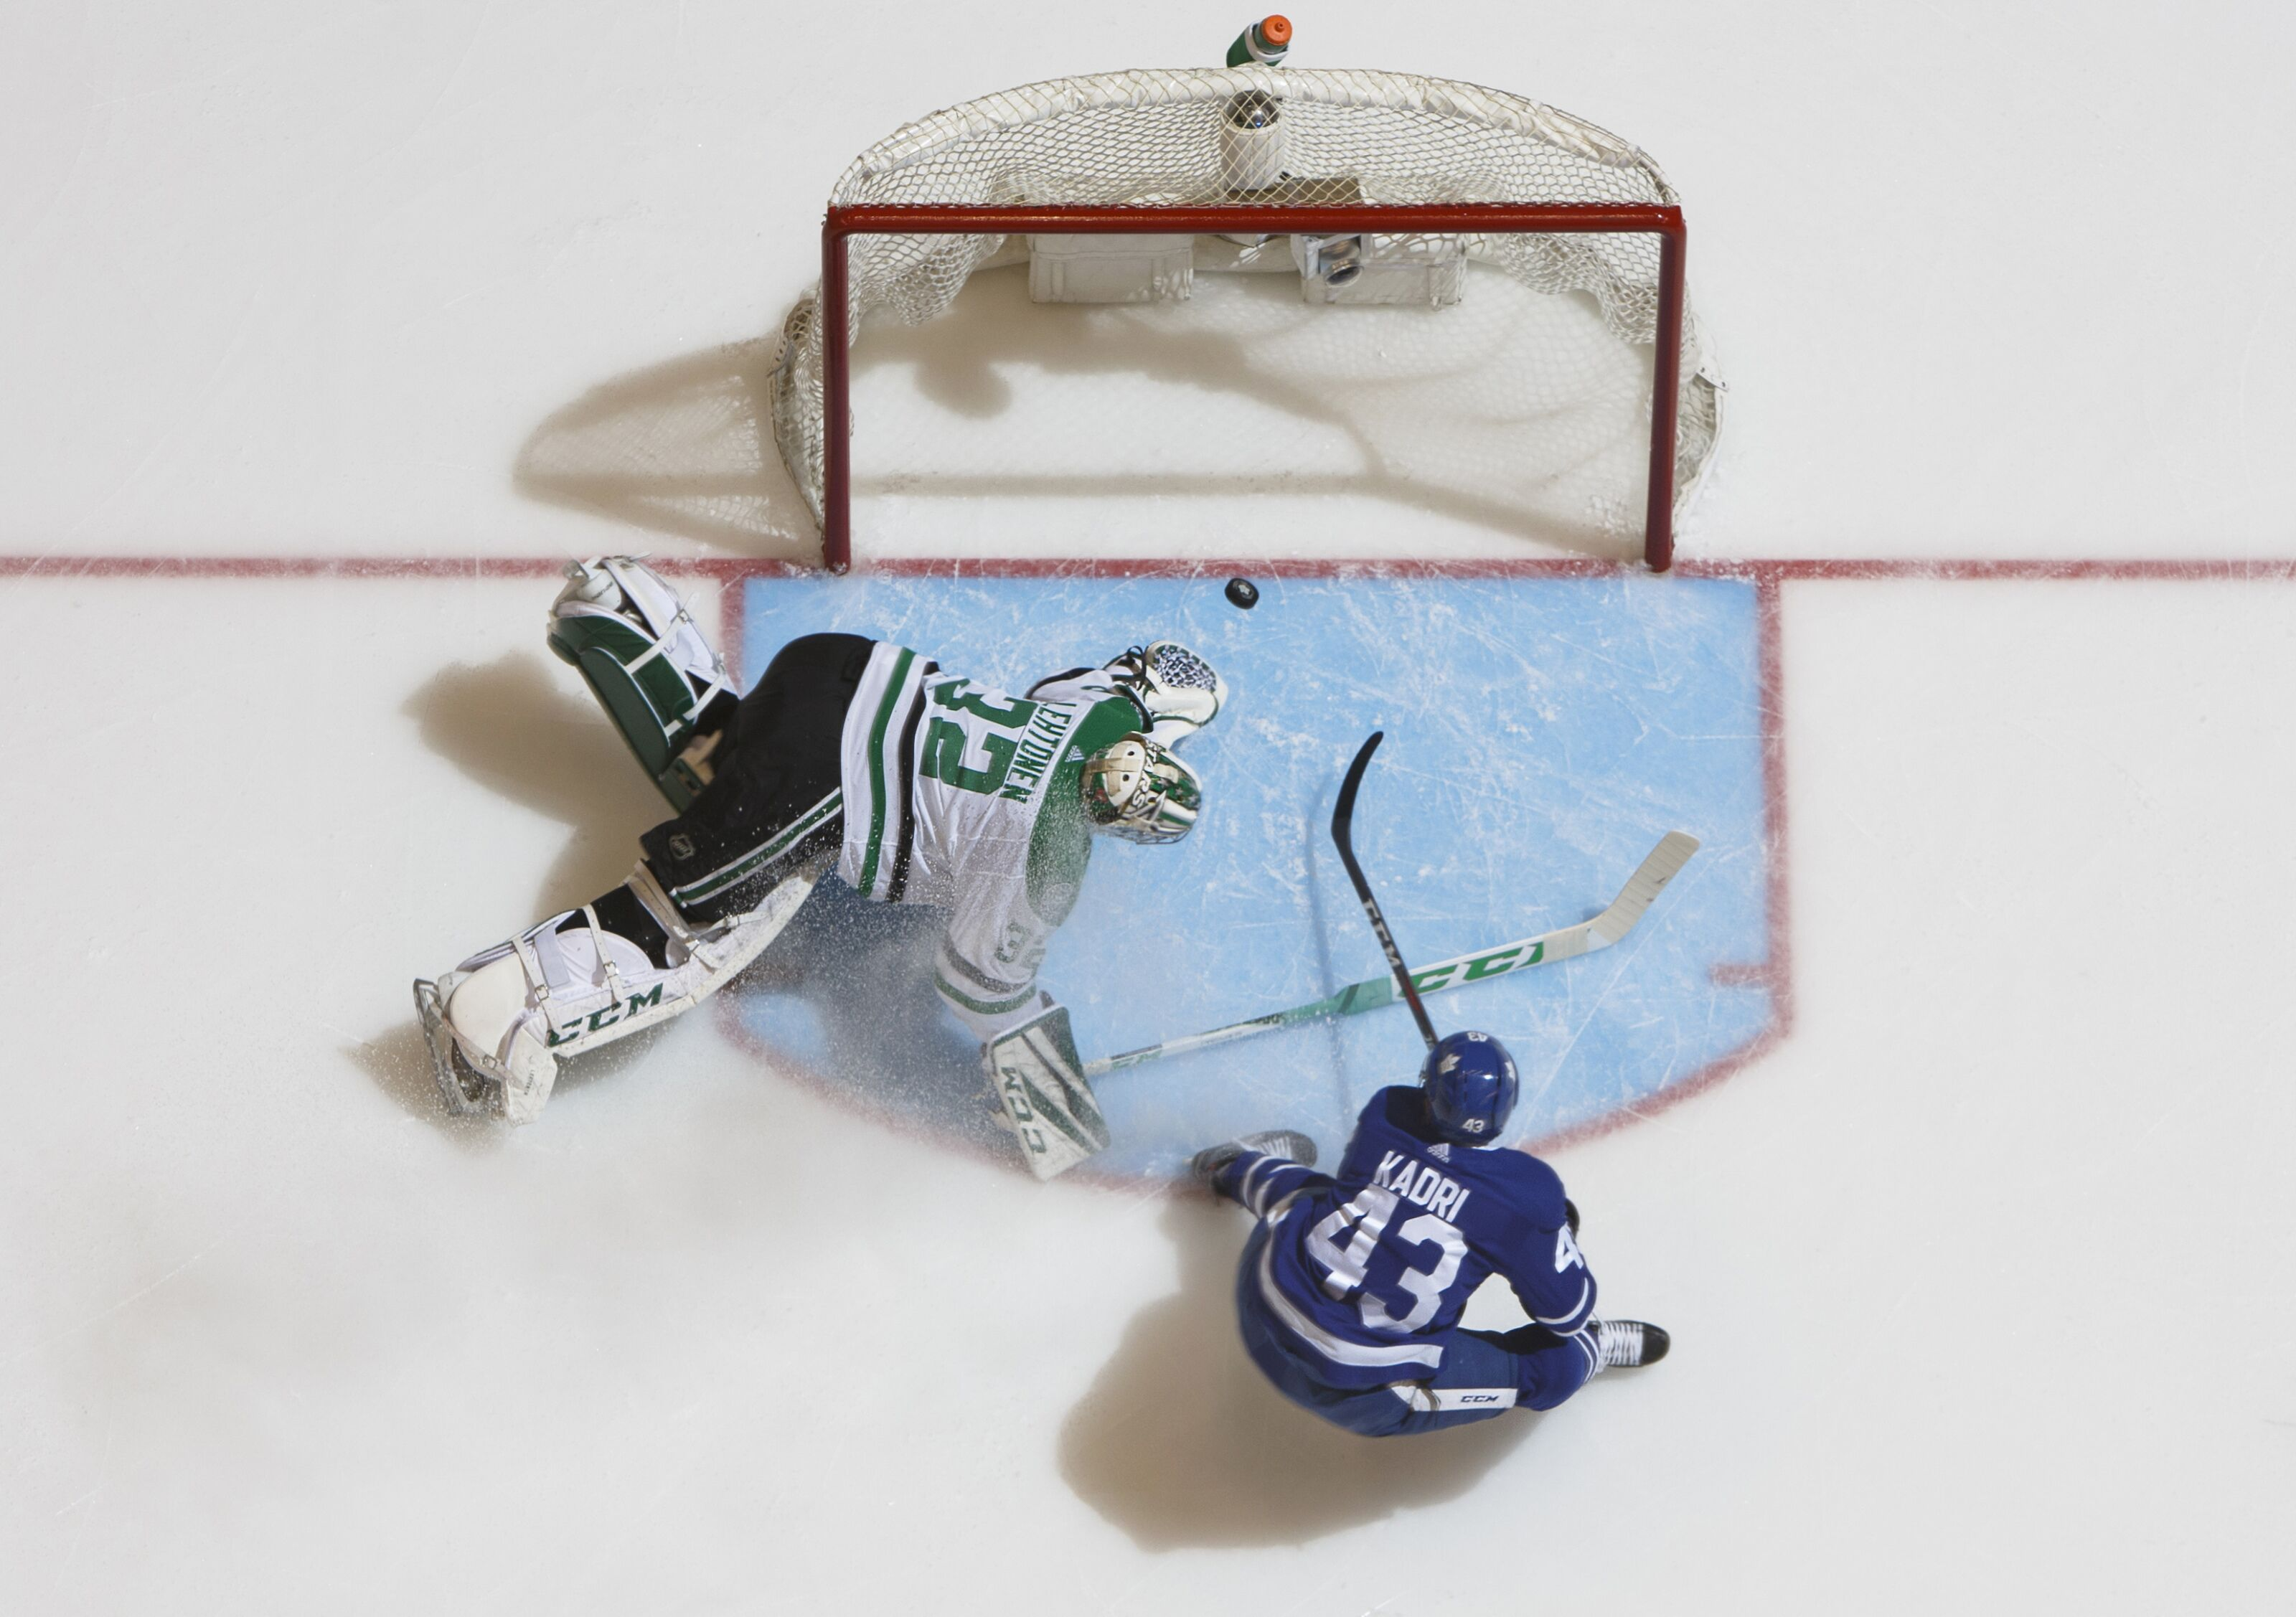 Dallas Stars Rule Changes That Could Improve The Nhl